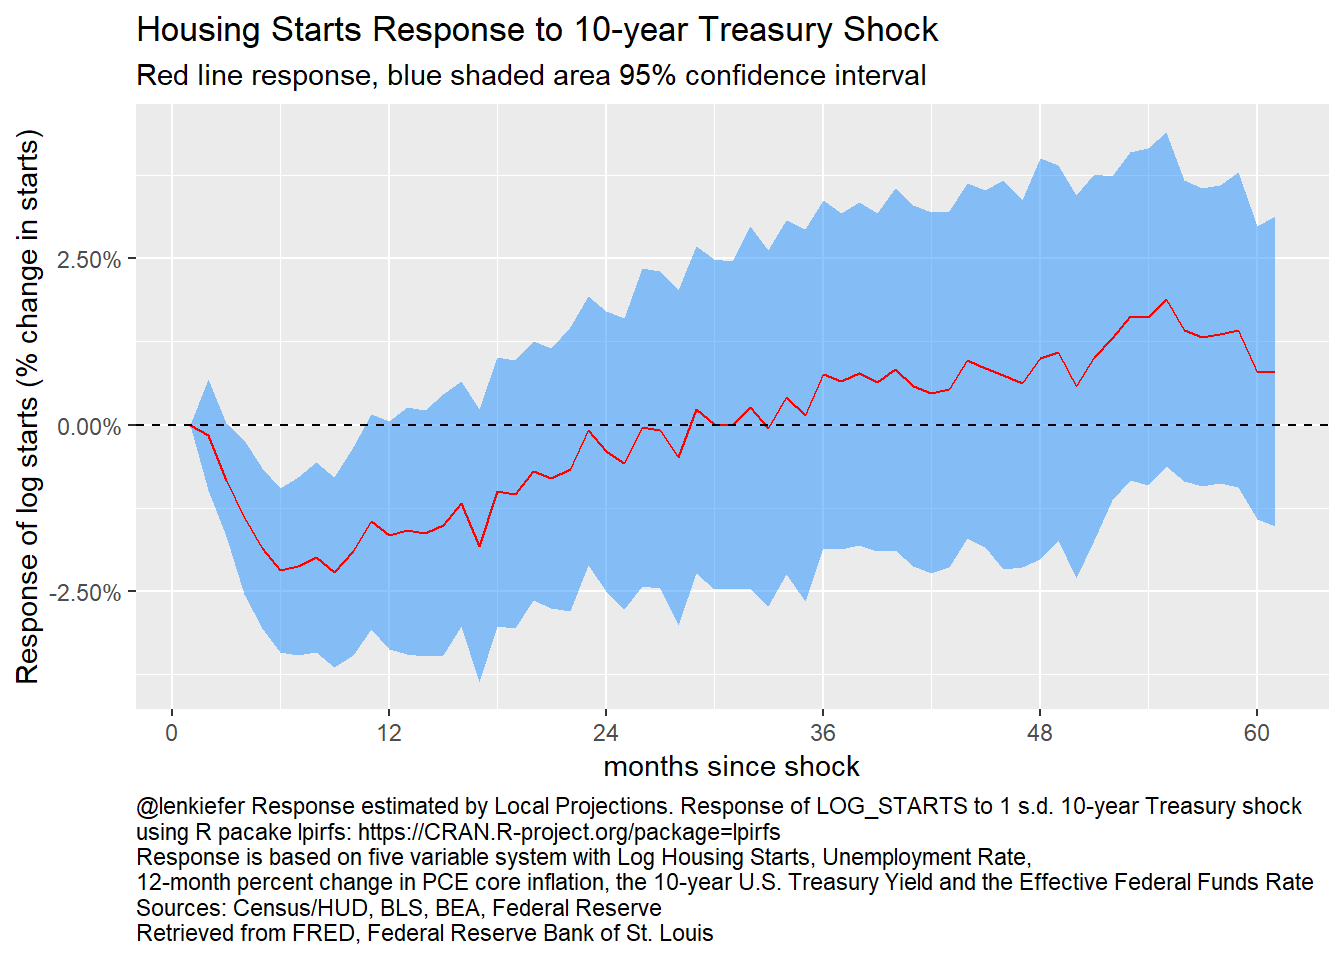 Local Projections: Response of log starts to 10-year Treasury shock